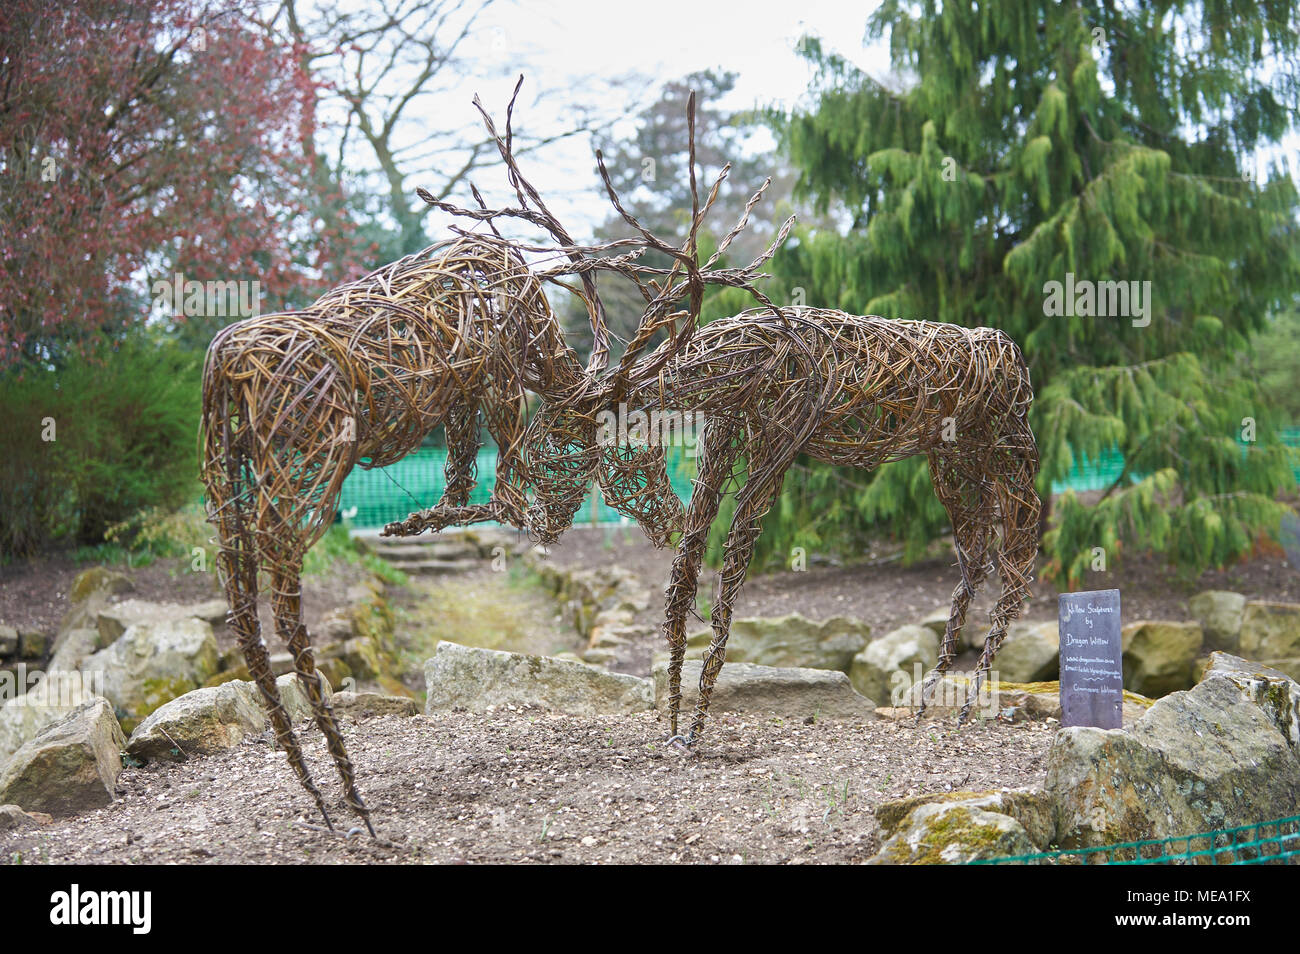 Wire Sculptures In The Garden Stock Photo 180929614 Alamy